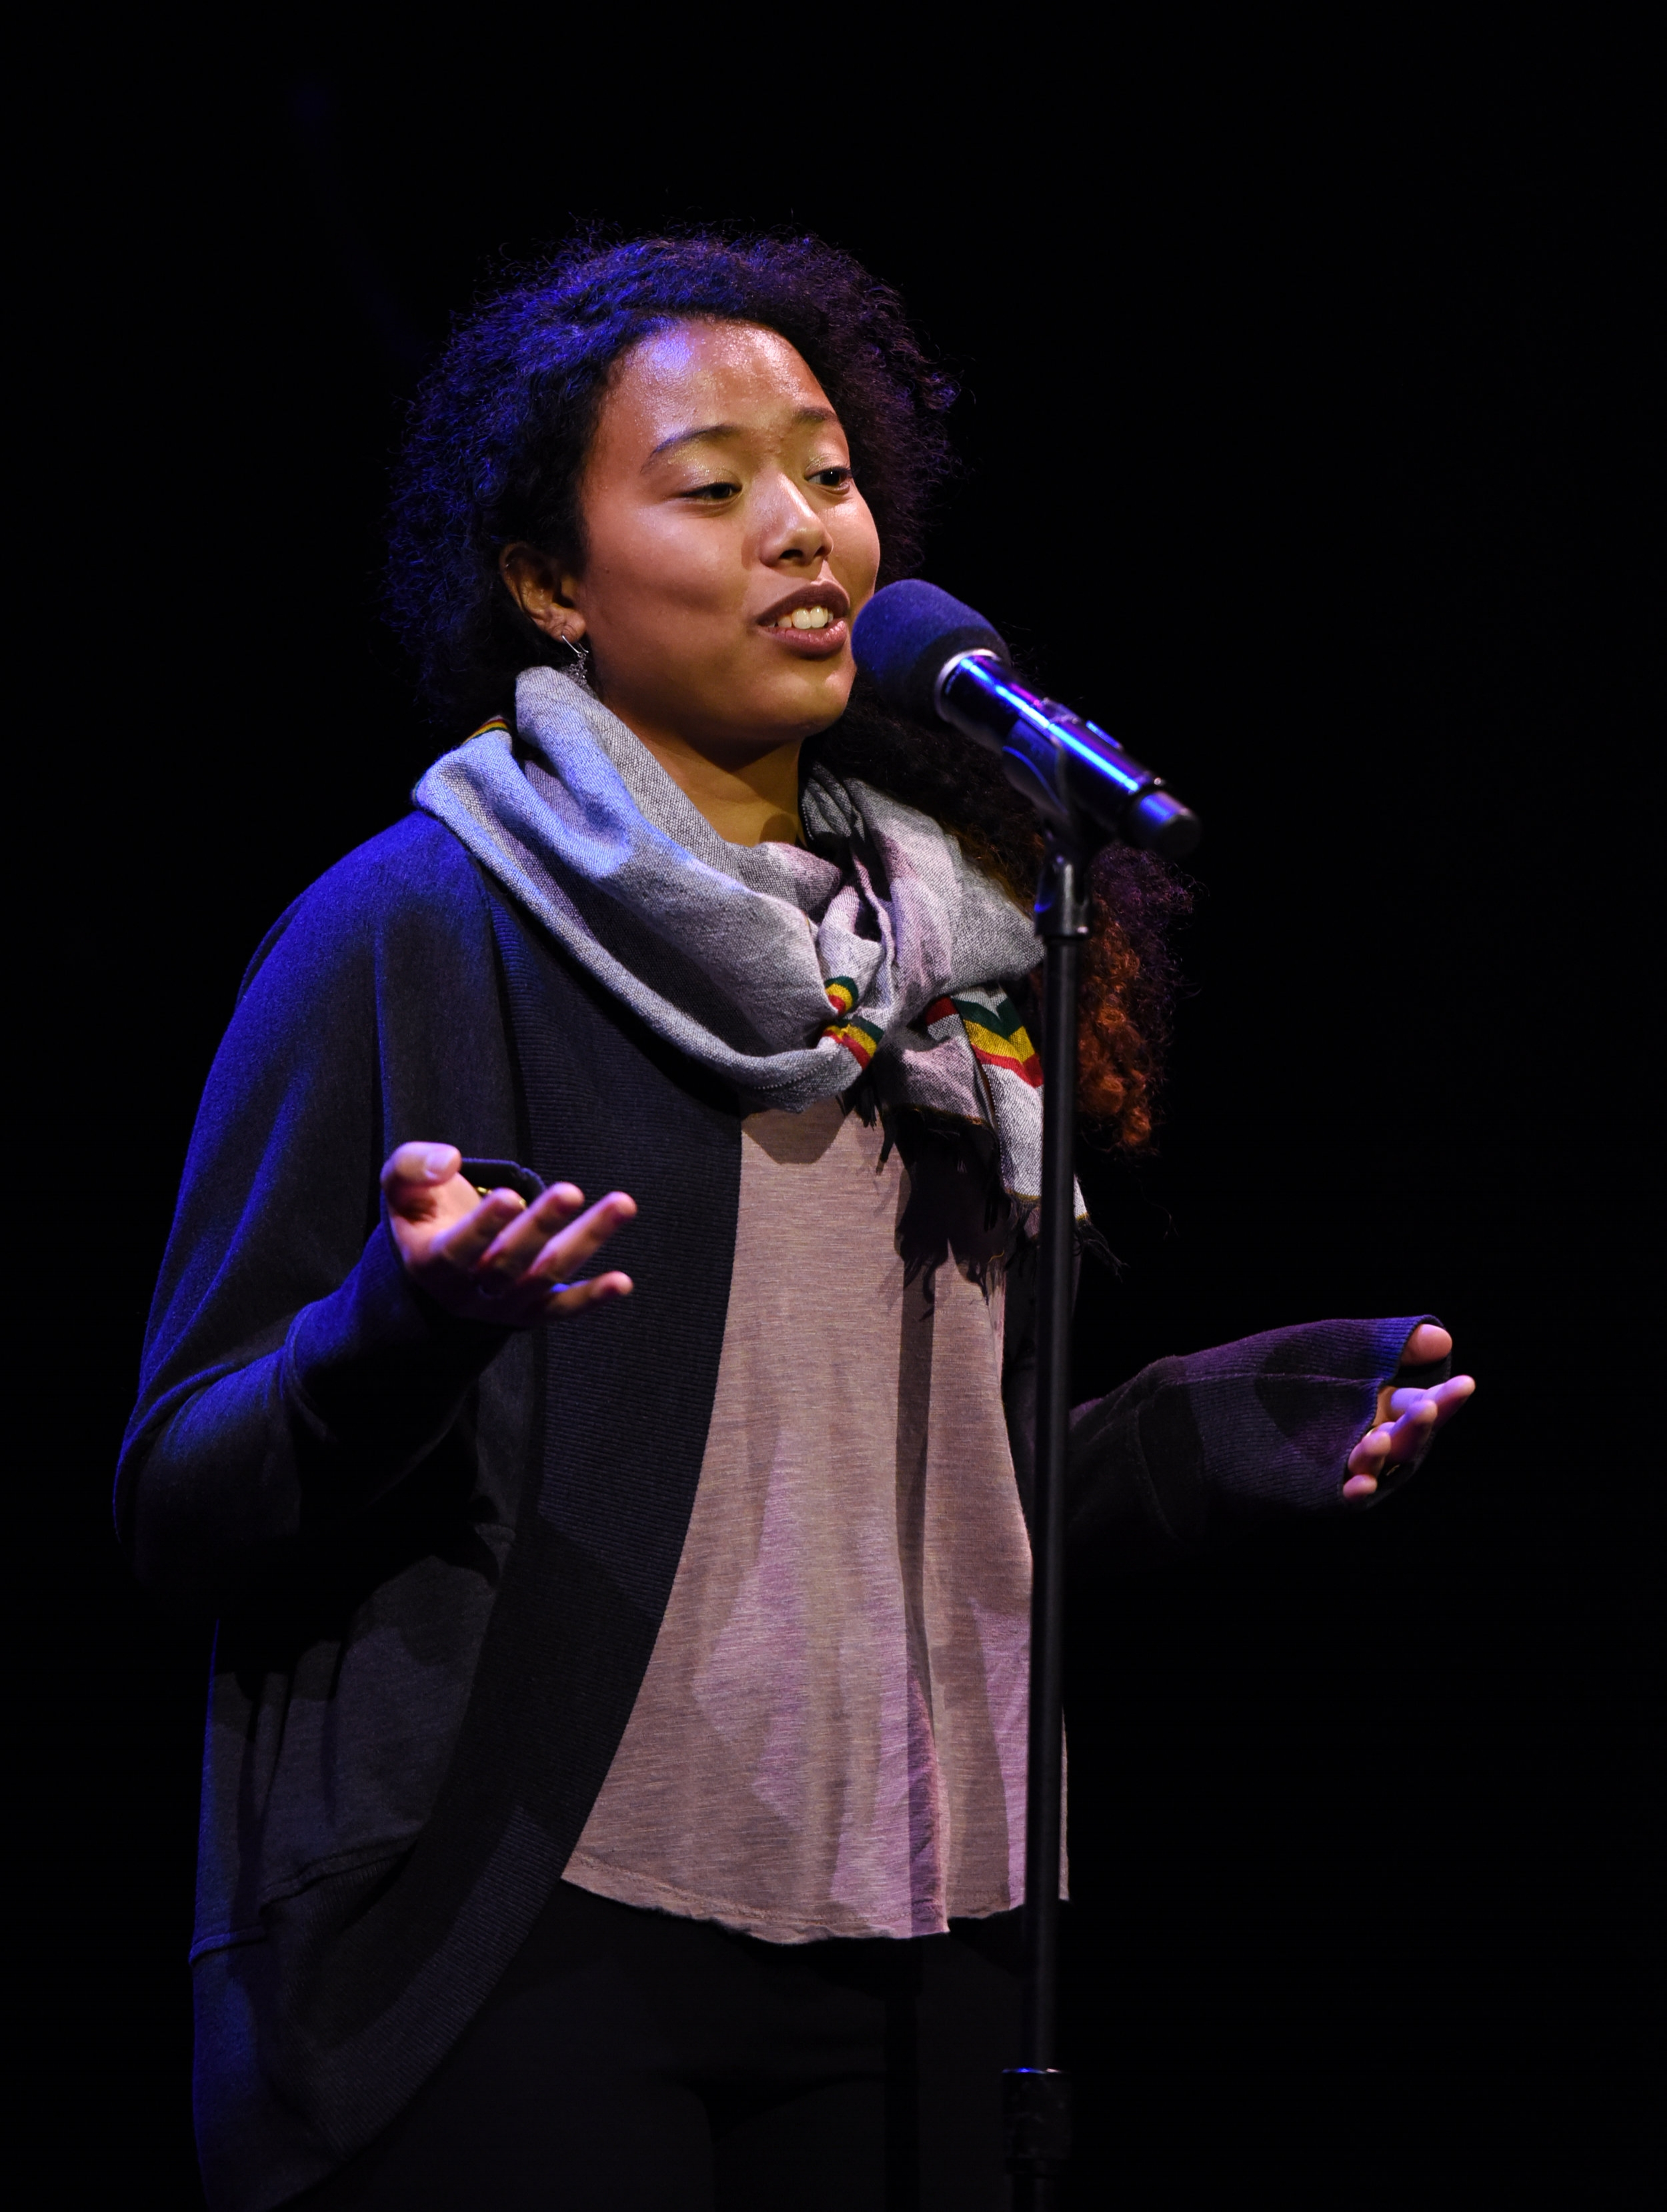 Selam Gano shares her story at the Oberon Theater in Cambridge, MA. Photo by Kate Flock